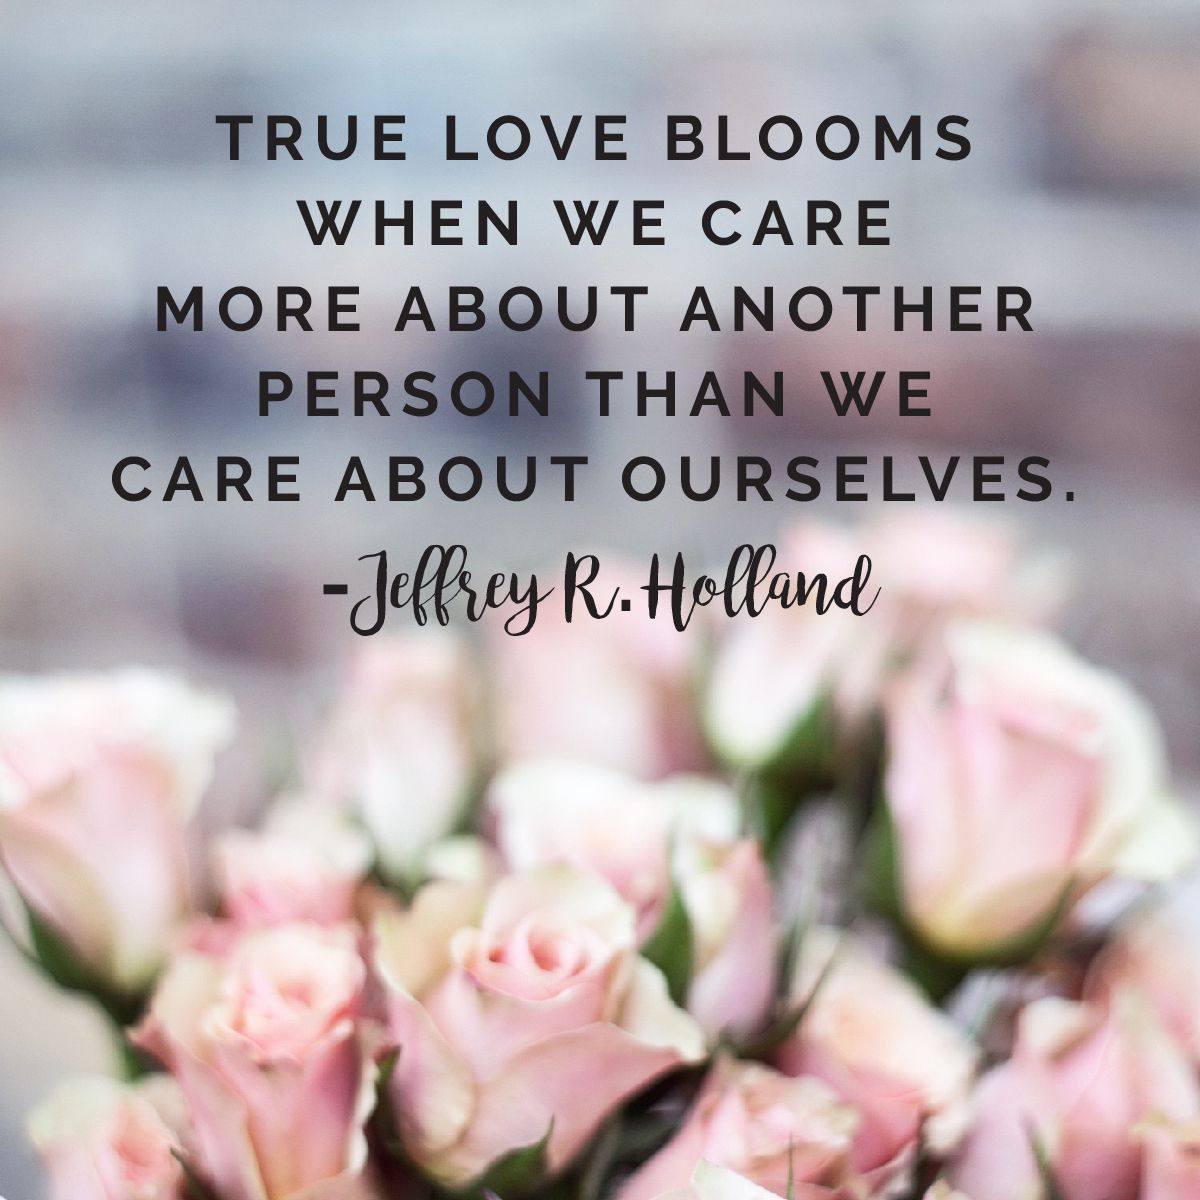 16 Valentine S Day Quotes To Share The Love: 15 LDS Quotes To Share With Your Loved Ones On Valentine's